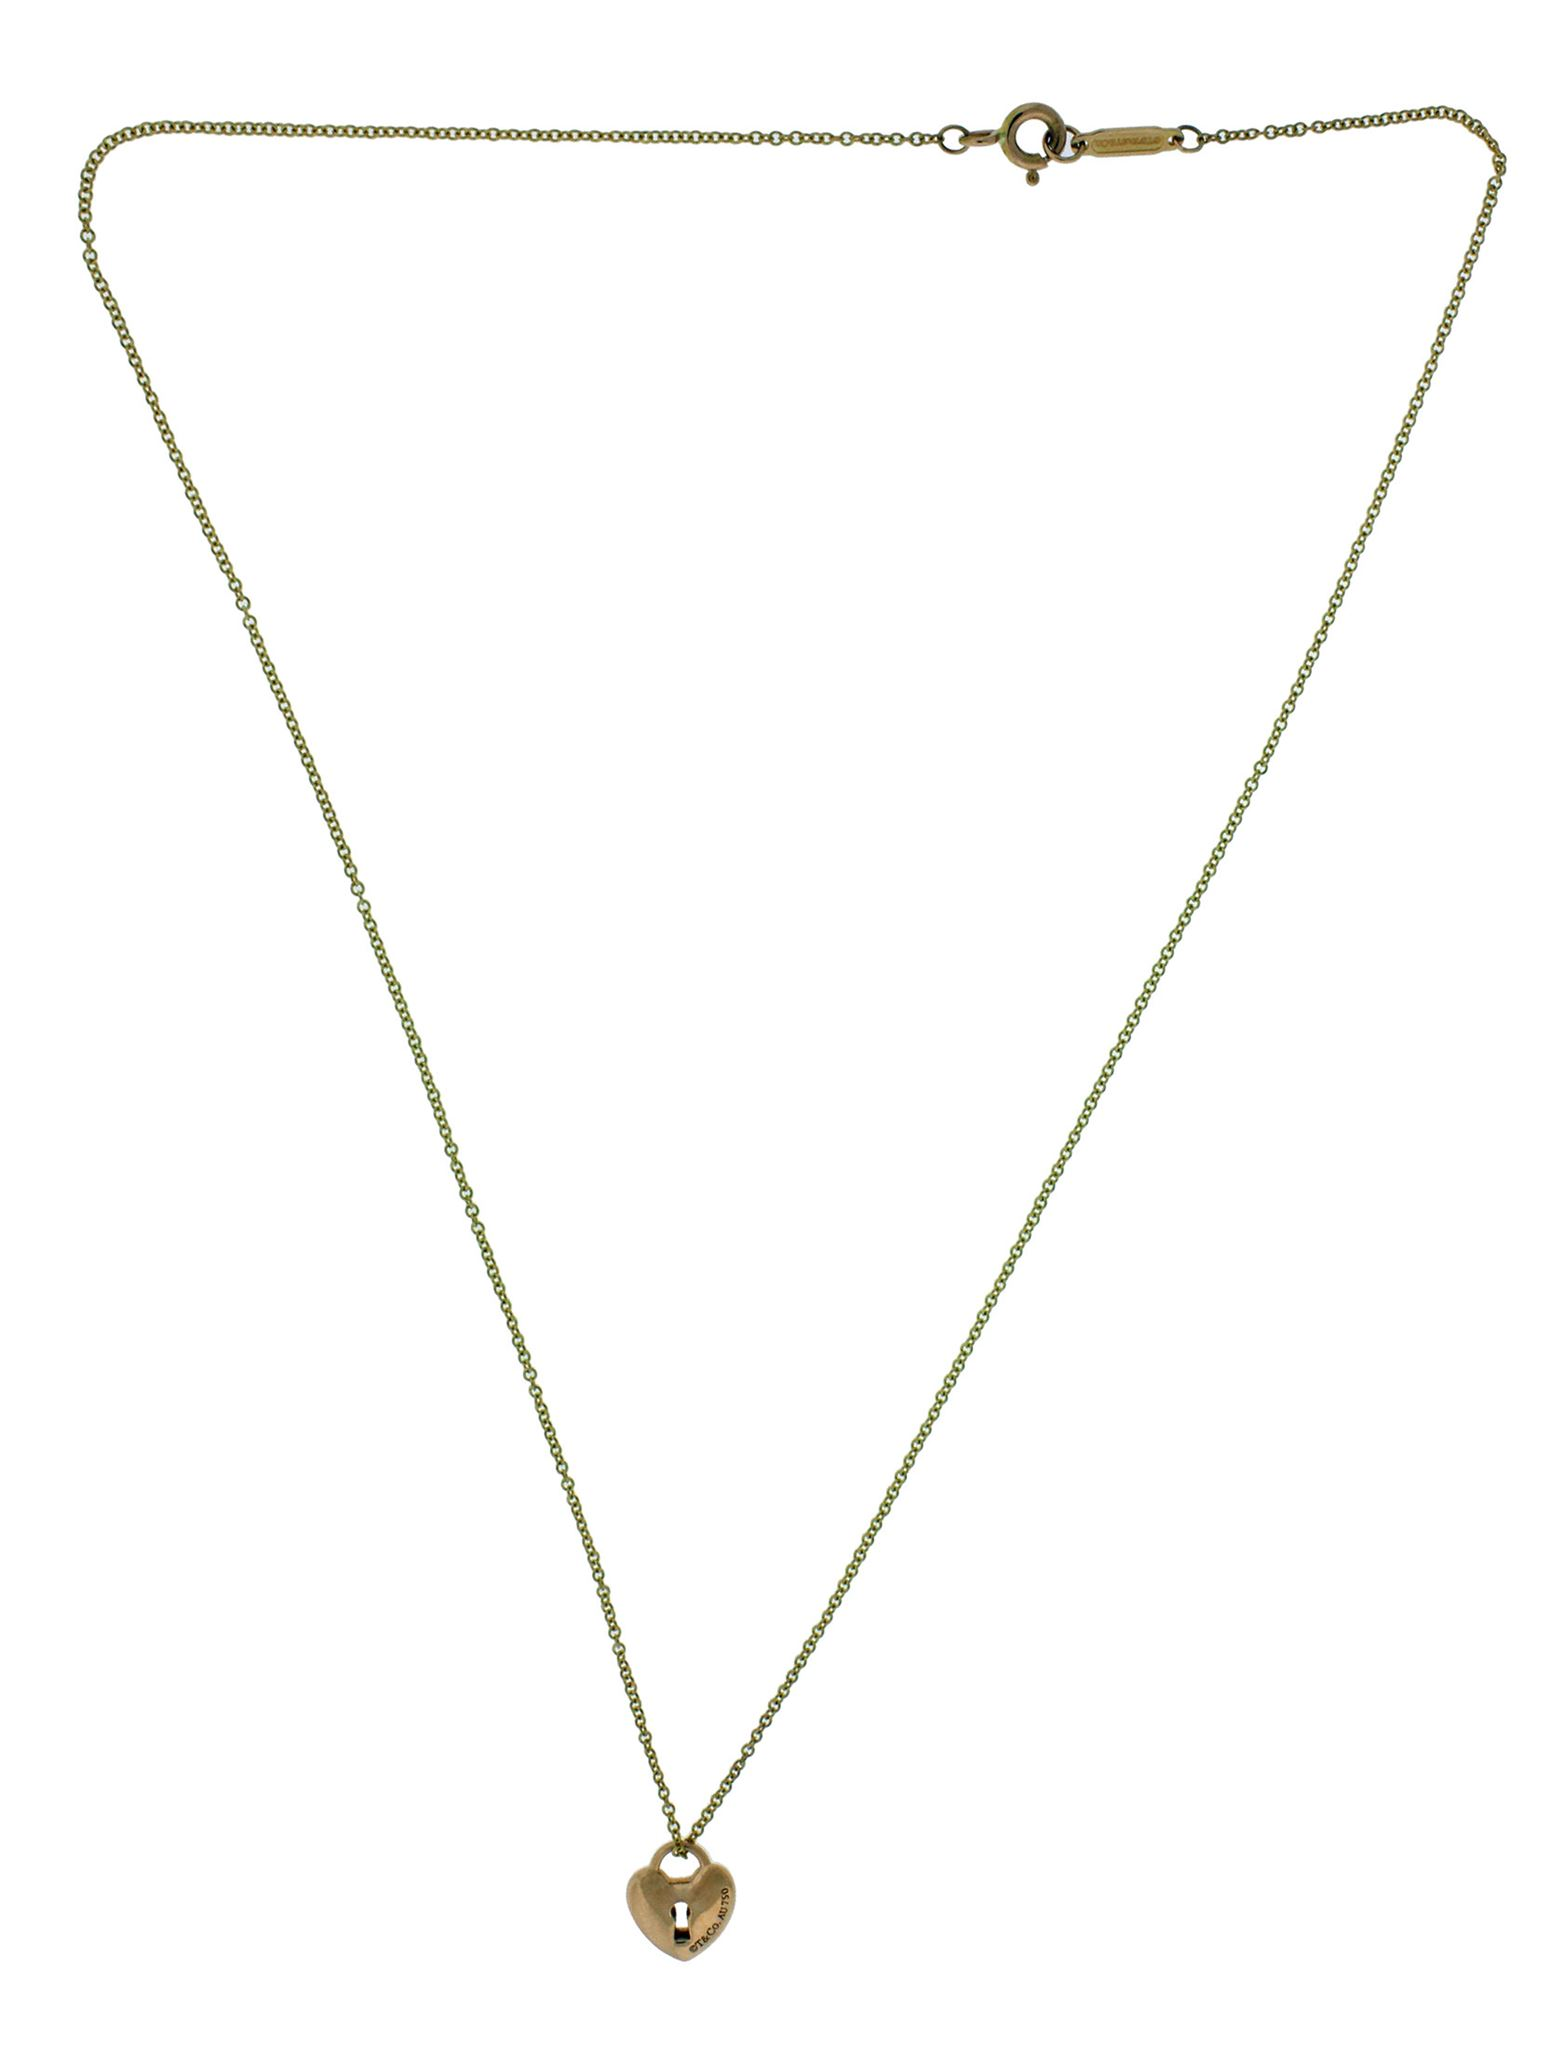 Tiffany & Co Locks small heart lock necklace in 18k rose gold 16